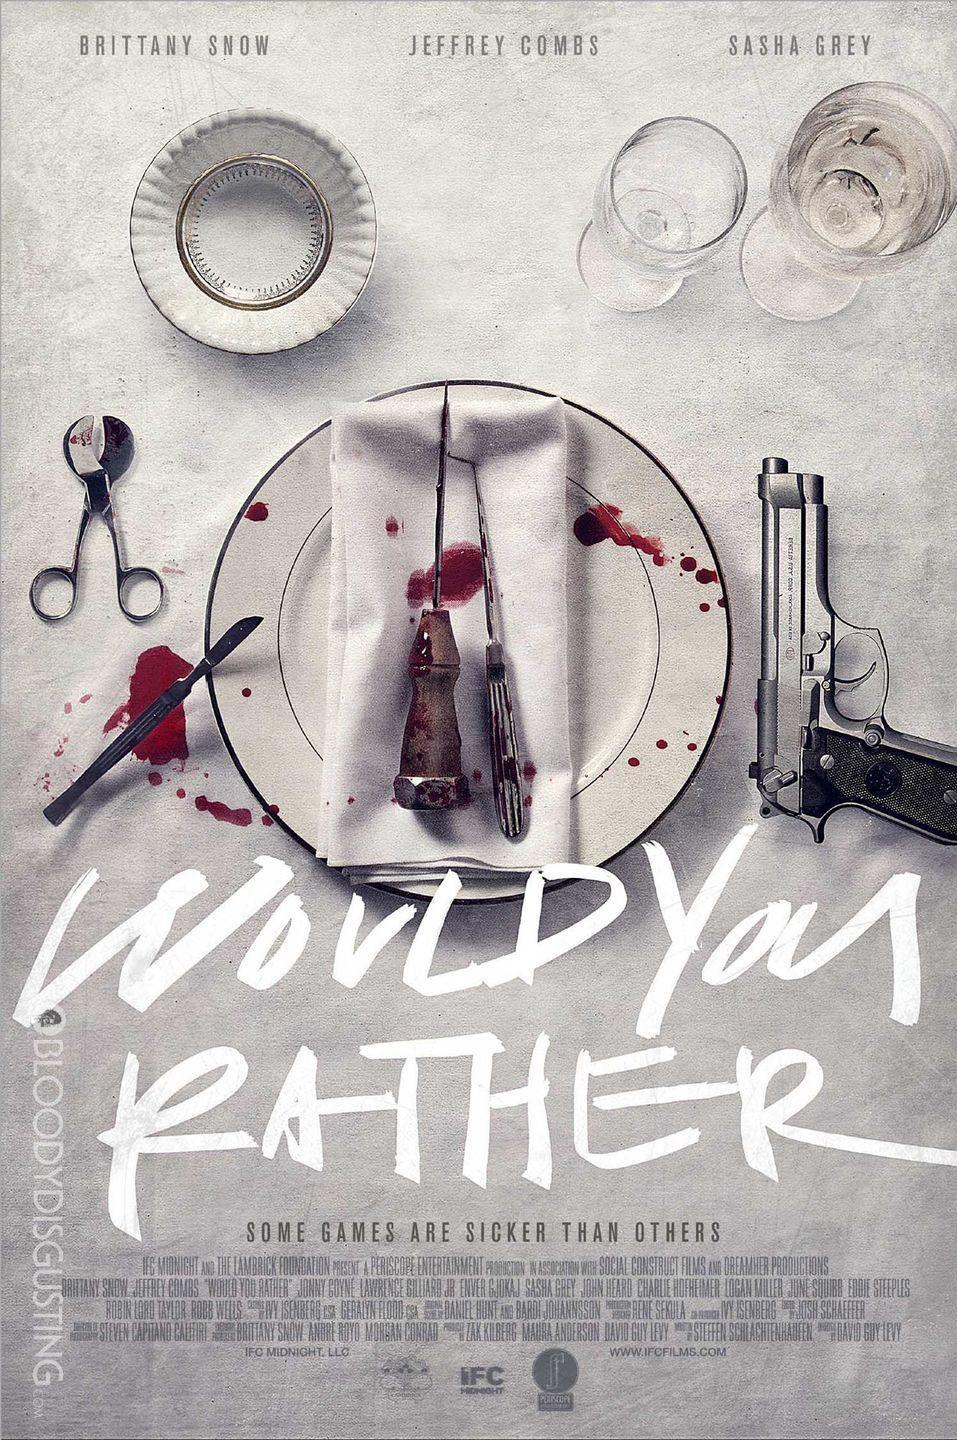 """<p>The popular game takes a deadly turn when a group of people have to compete against each other to please a sadistic aristocrat.</p><p><a class=""""link rapid-noclick-resp"""" href=""""https://www.netflix.com/title/70270388"""" rel=""""nofollow noopener"""" target=""""_blank"""" data-ylk=""""slk:STREAM NOW"""">STREAM NOW</a></p>"""